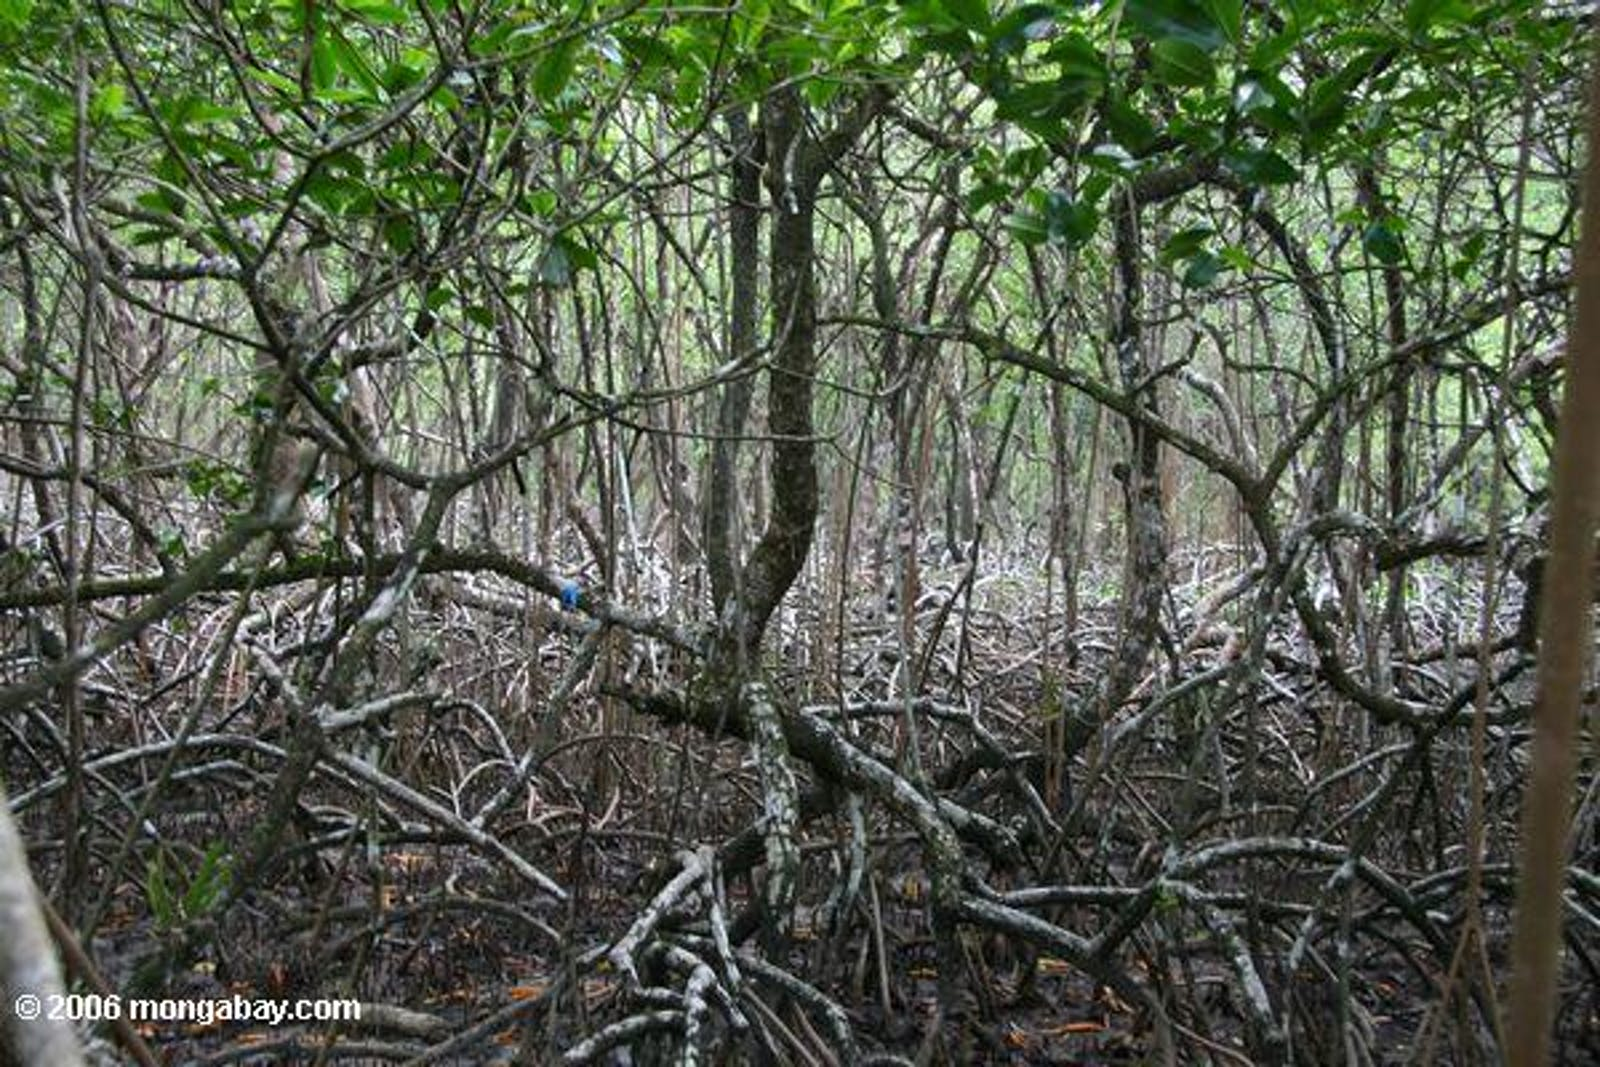 South American Pacific Mangroves